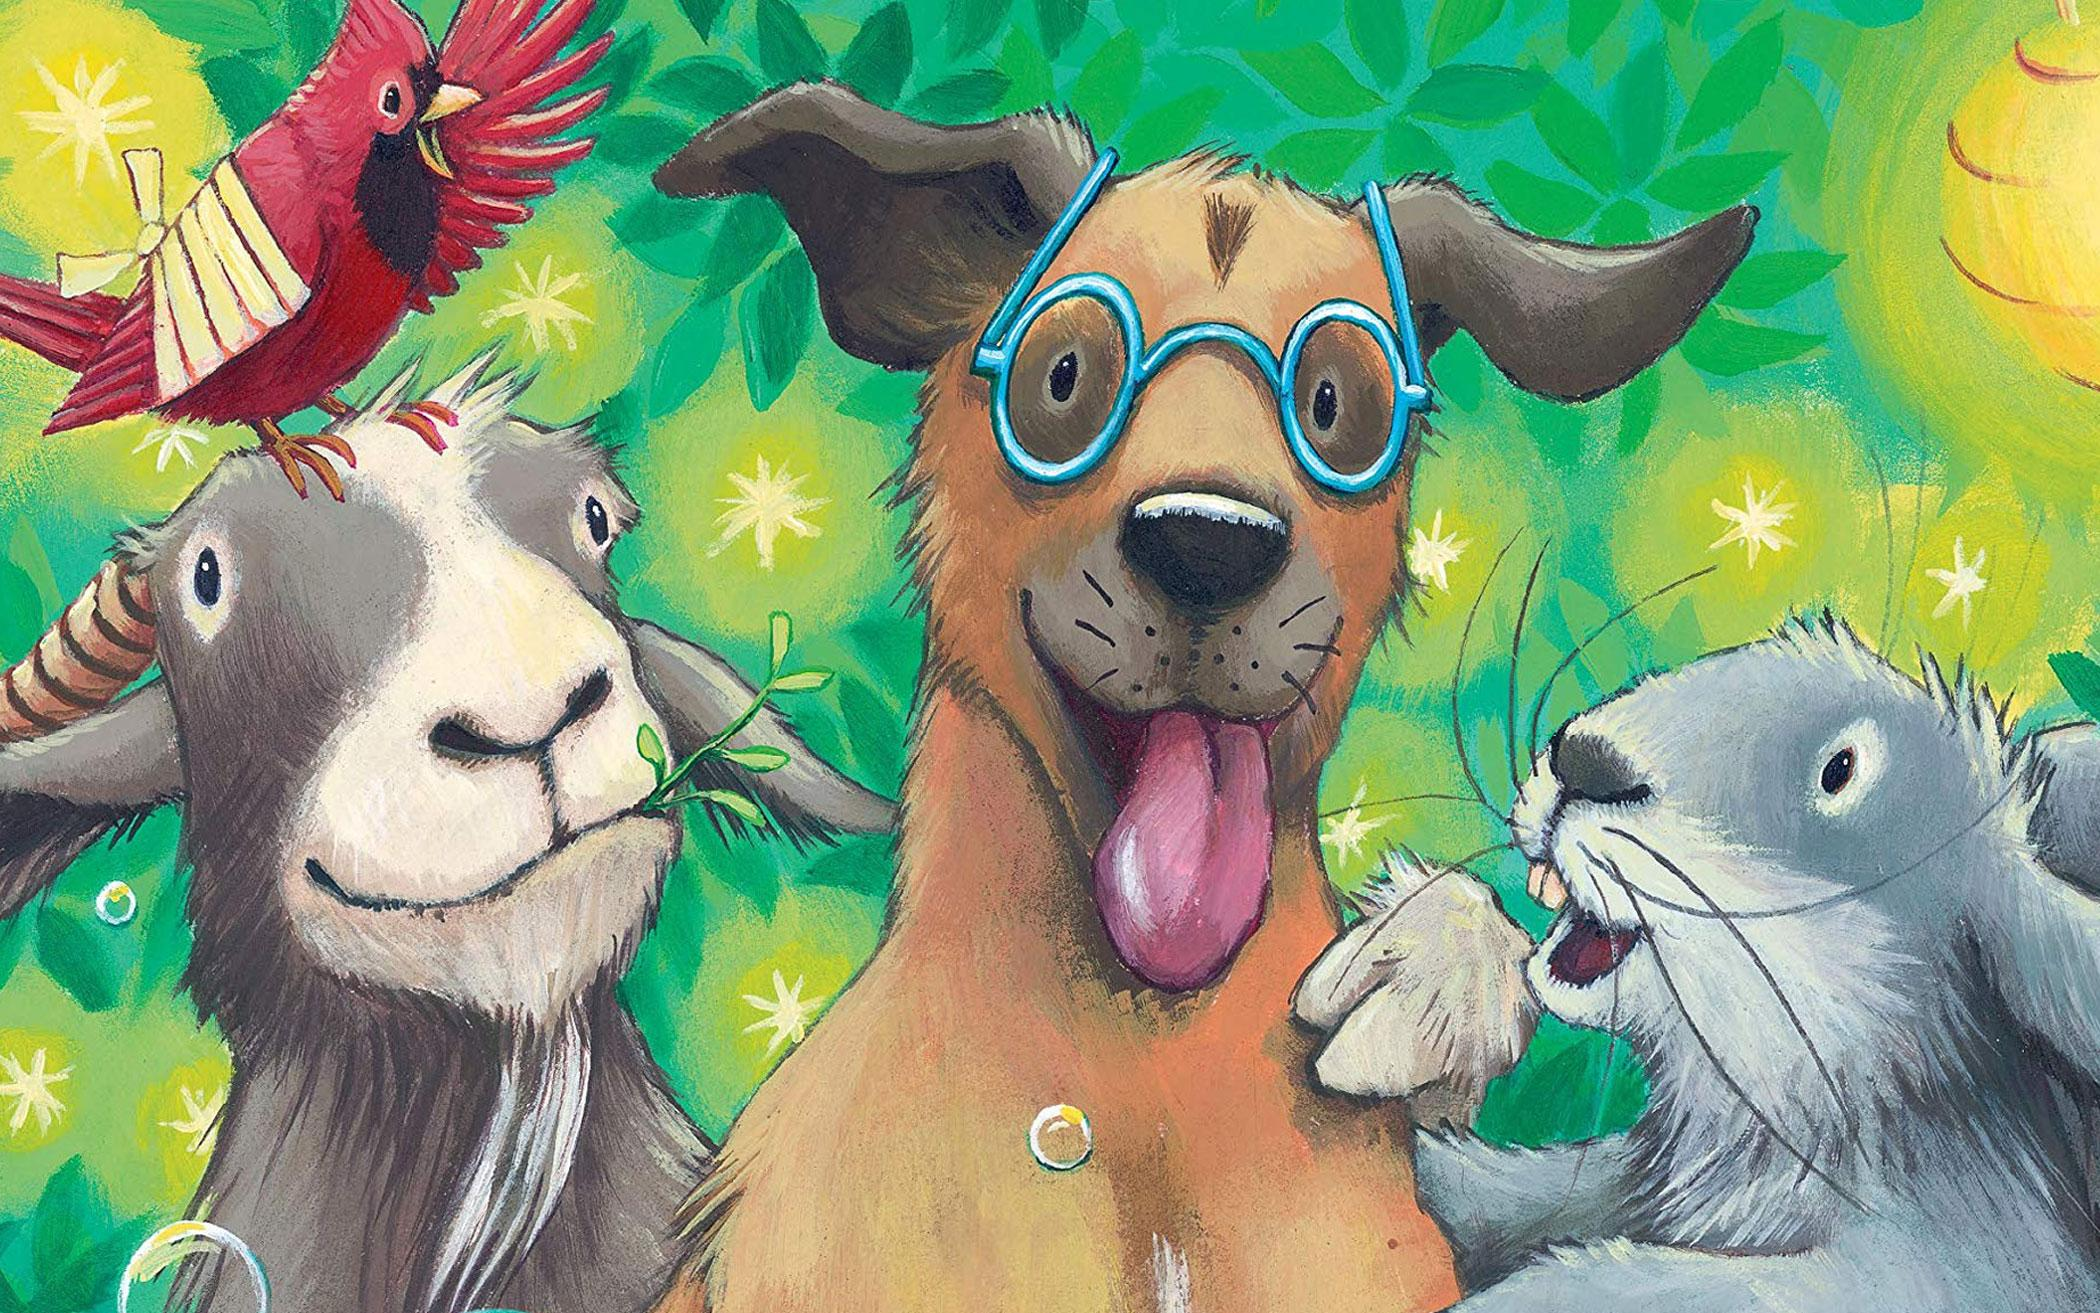 From Chewable Books to Books on Which to Chew: Tomes for Younger Readers